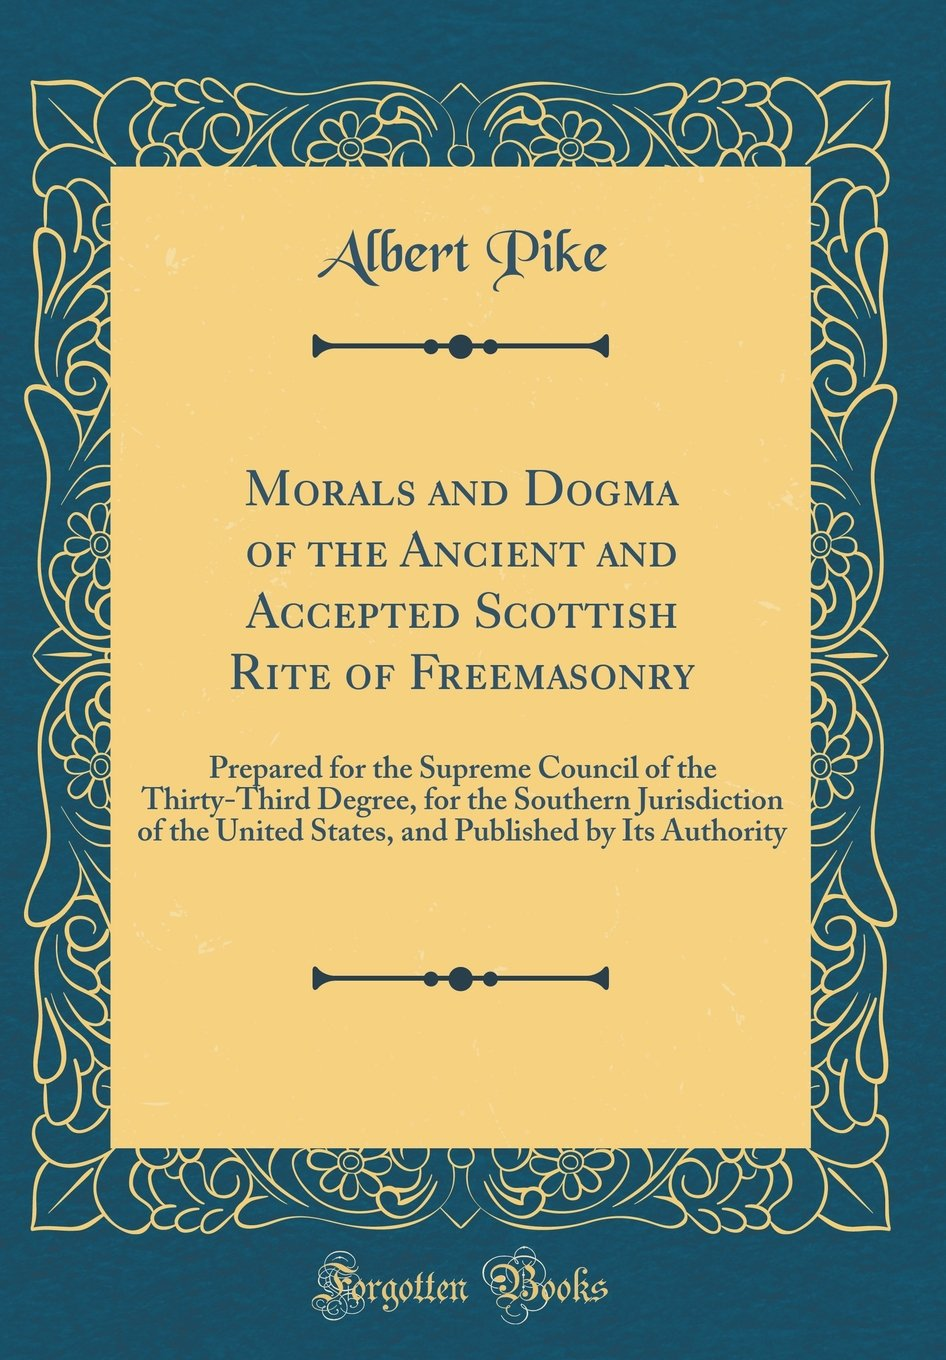 Download Morals and Dogma of the Ancient and Accepted Scottish Rite of Freemasonry: Prepared for the Supreme Council of the Thirty-Third Degree, for the ... Published by Its Authority (Classic Reprint) PDF